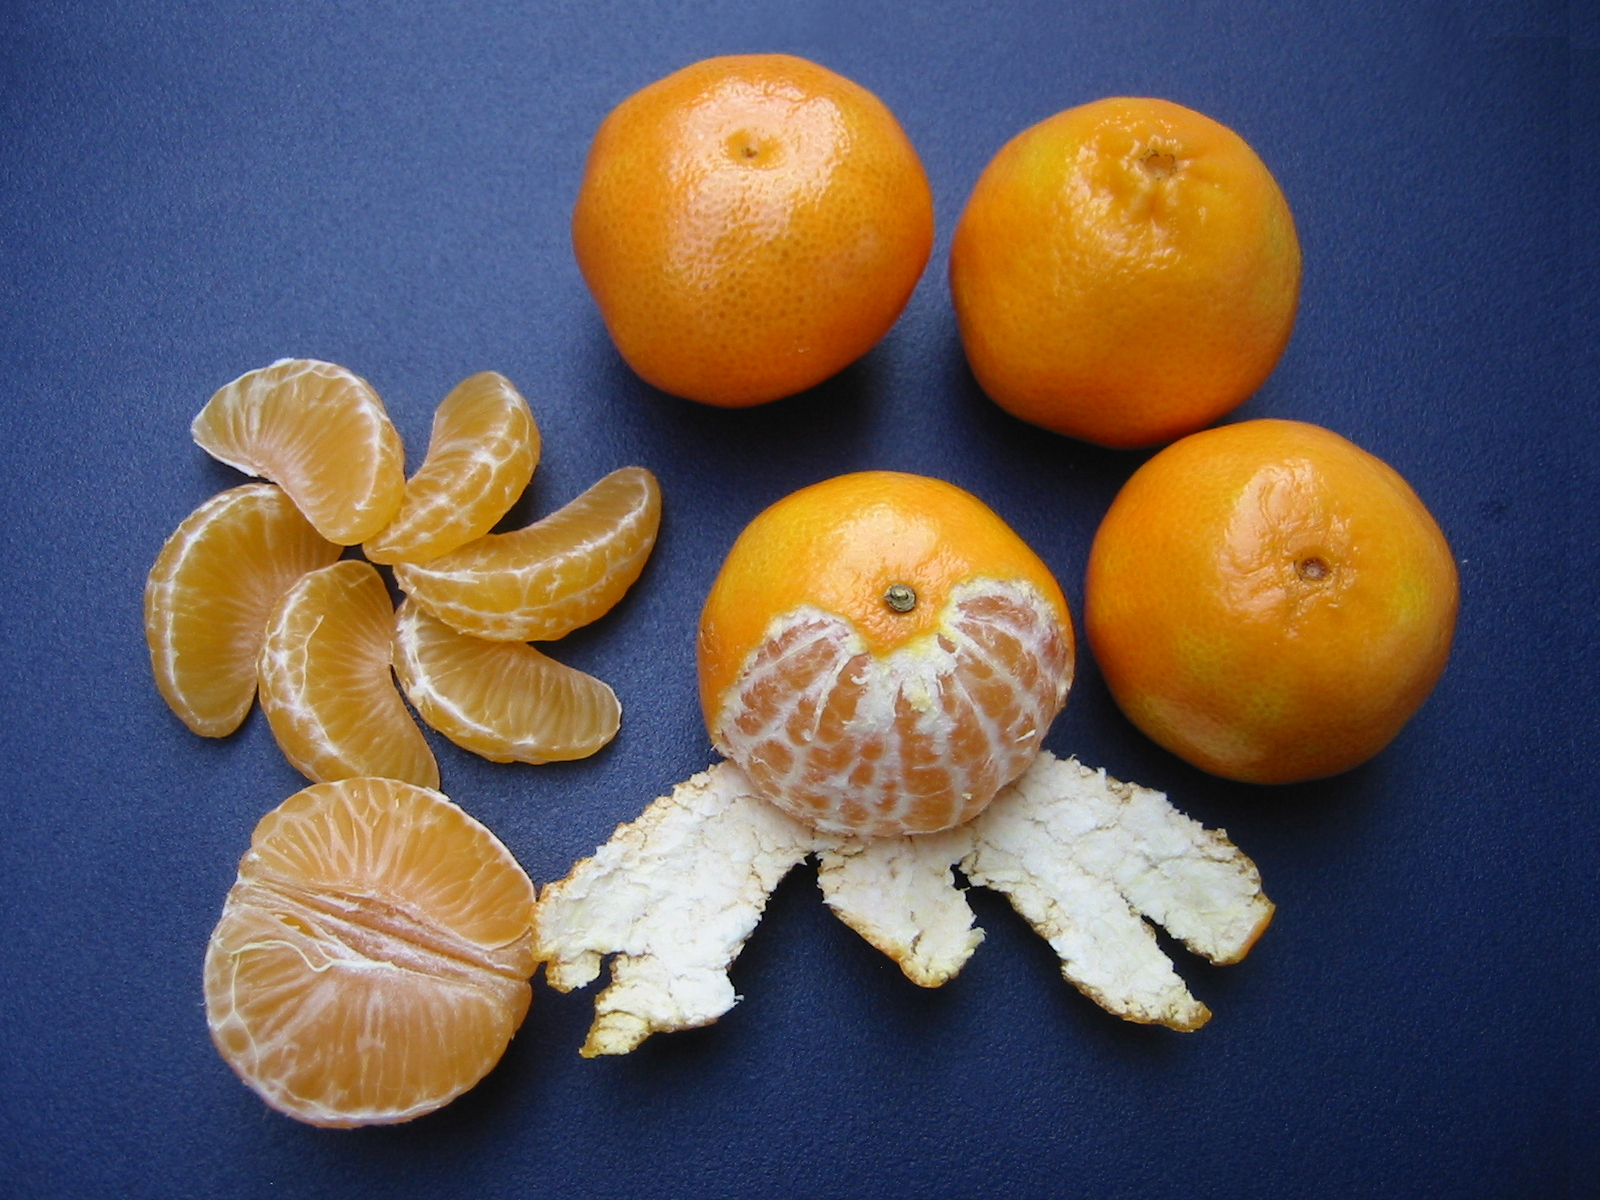 Clementine Fruit Images